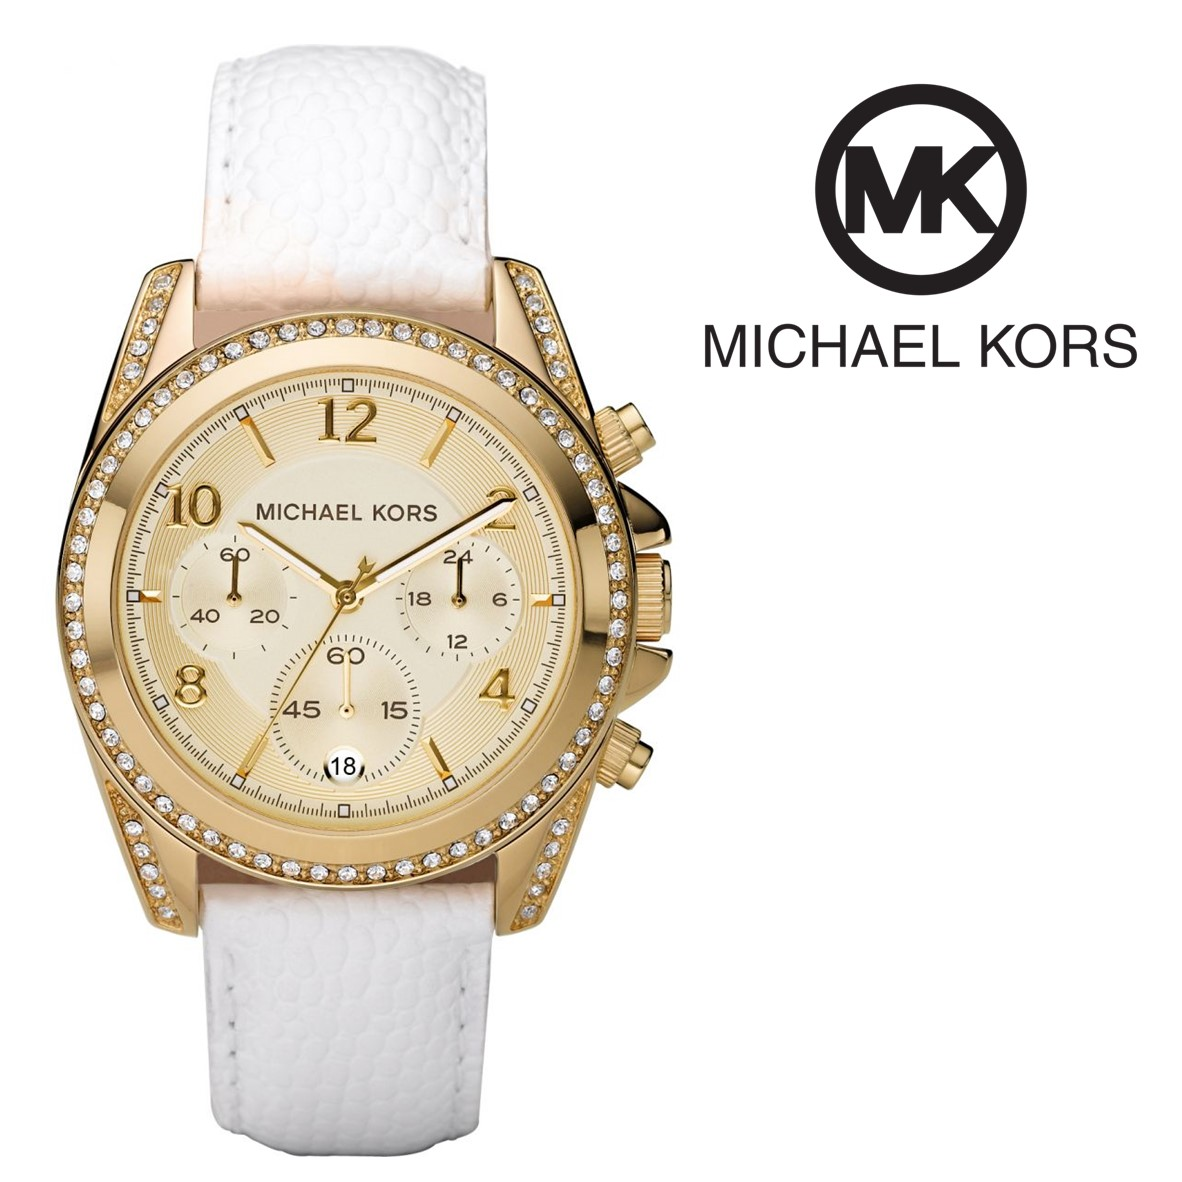 Relógio Michael Kors® MK5460 - You Like It ba4867489a